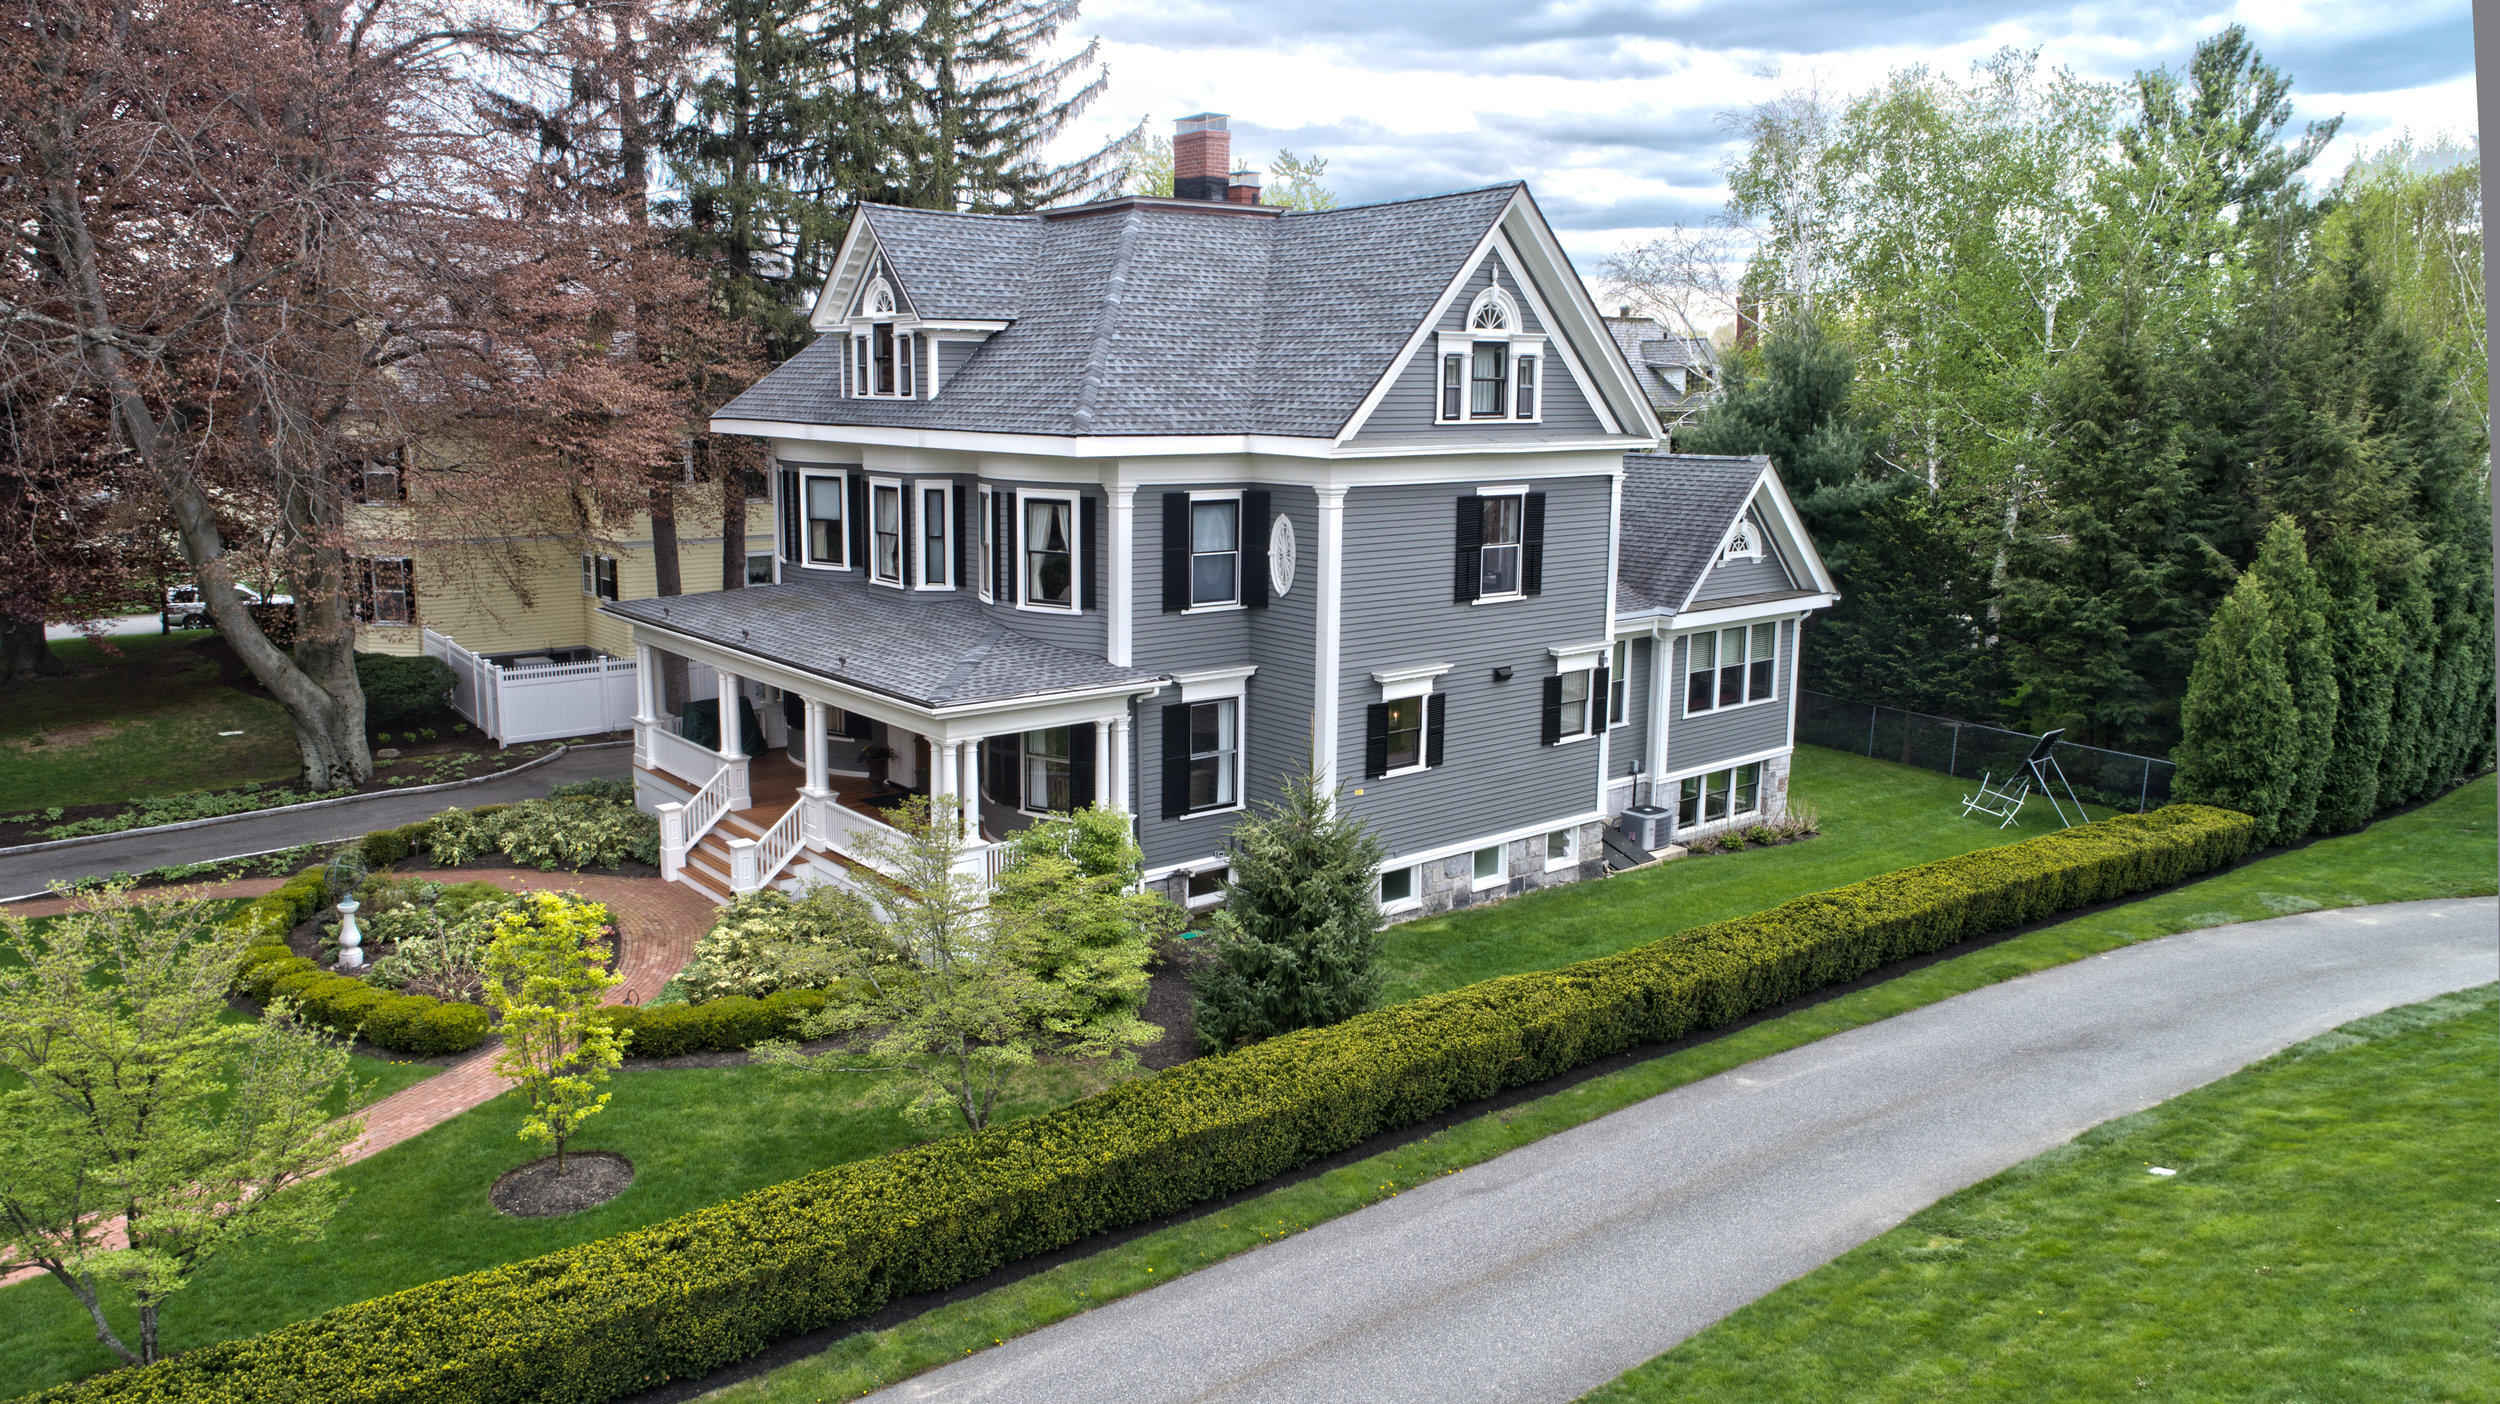 Example of Hermle Photography Real Estate Drone photography and HDR Real Estate Photography in Massachusetts